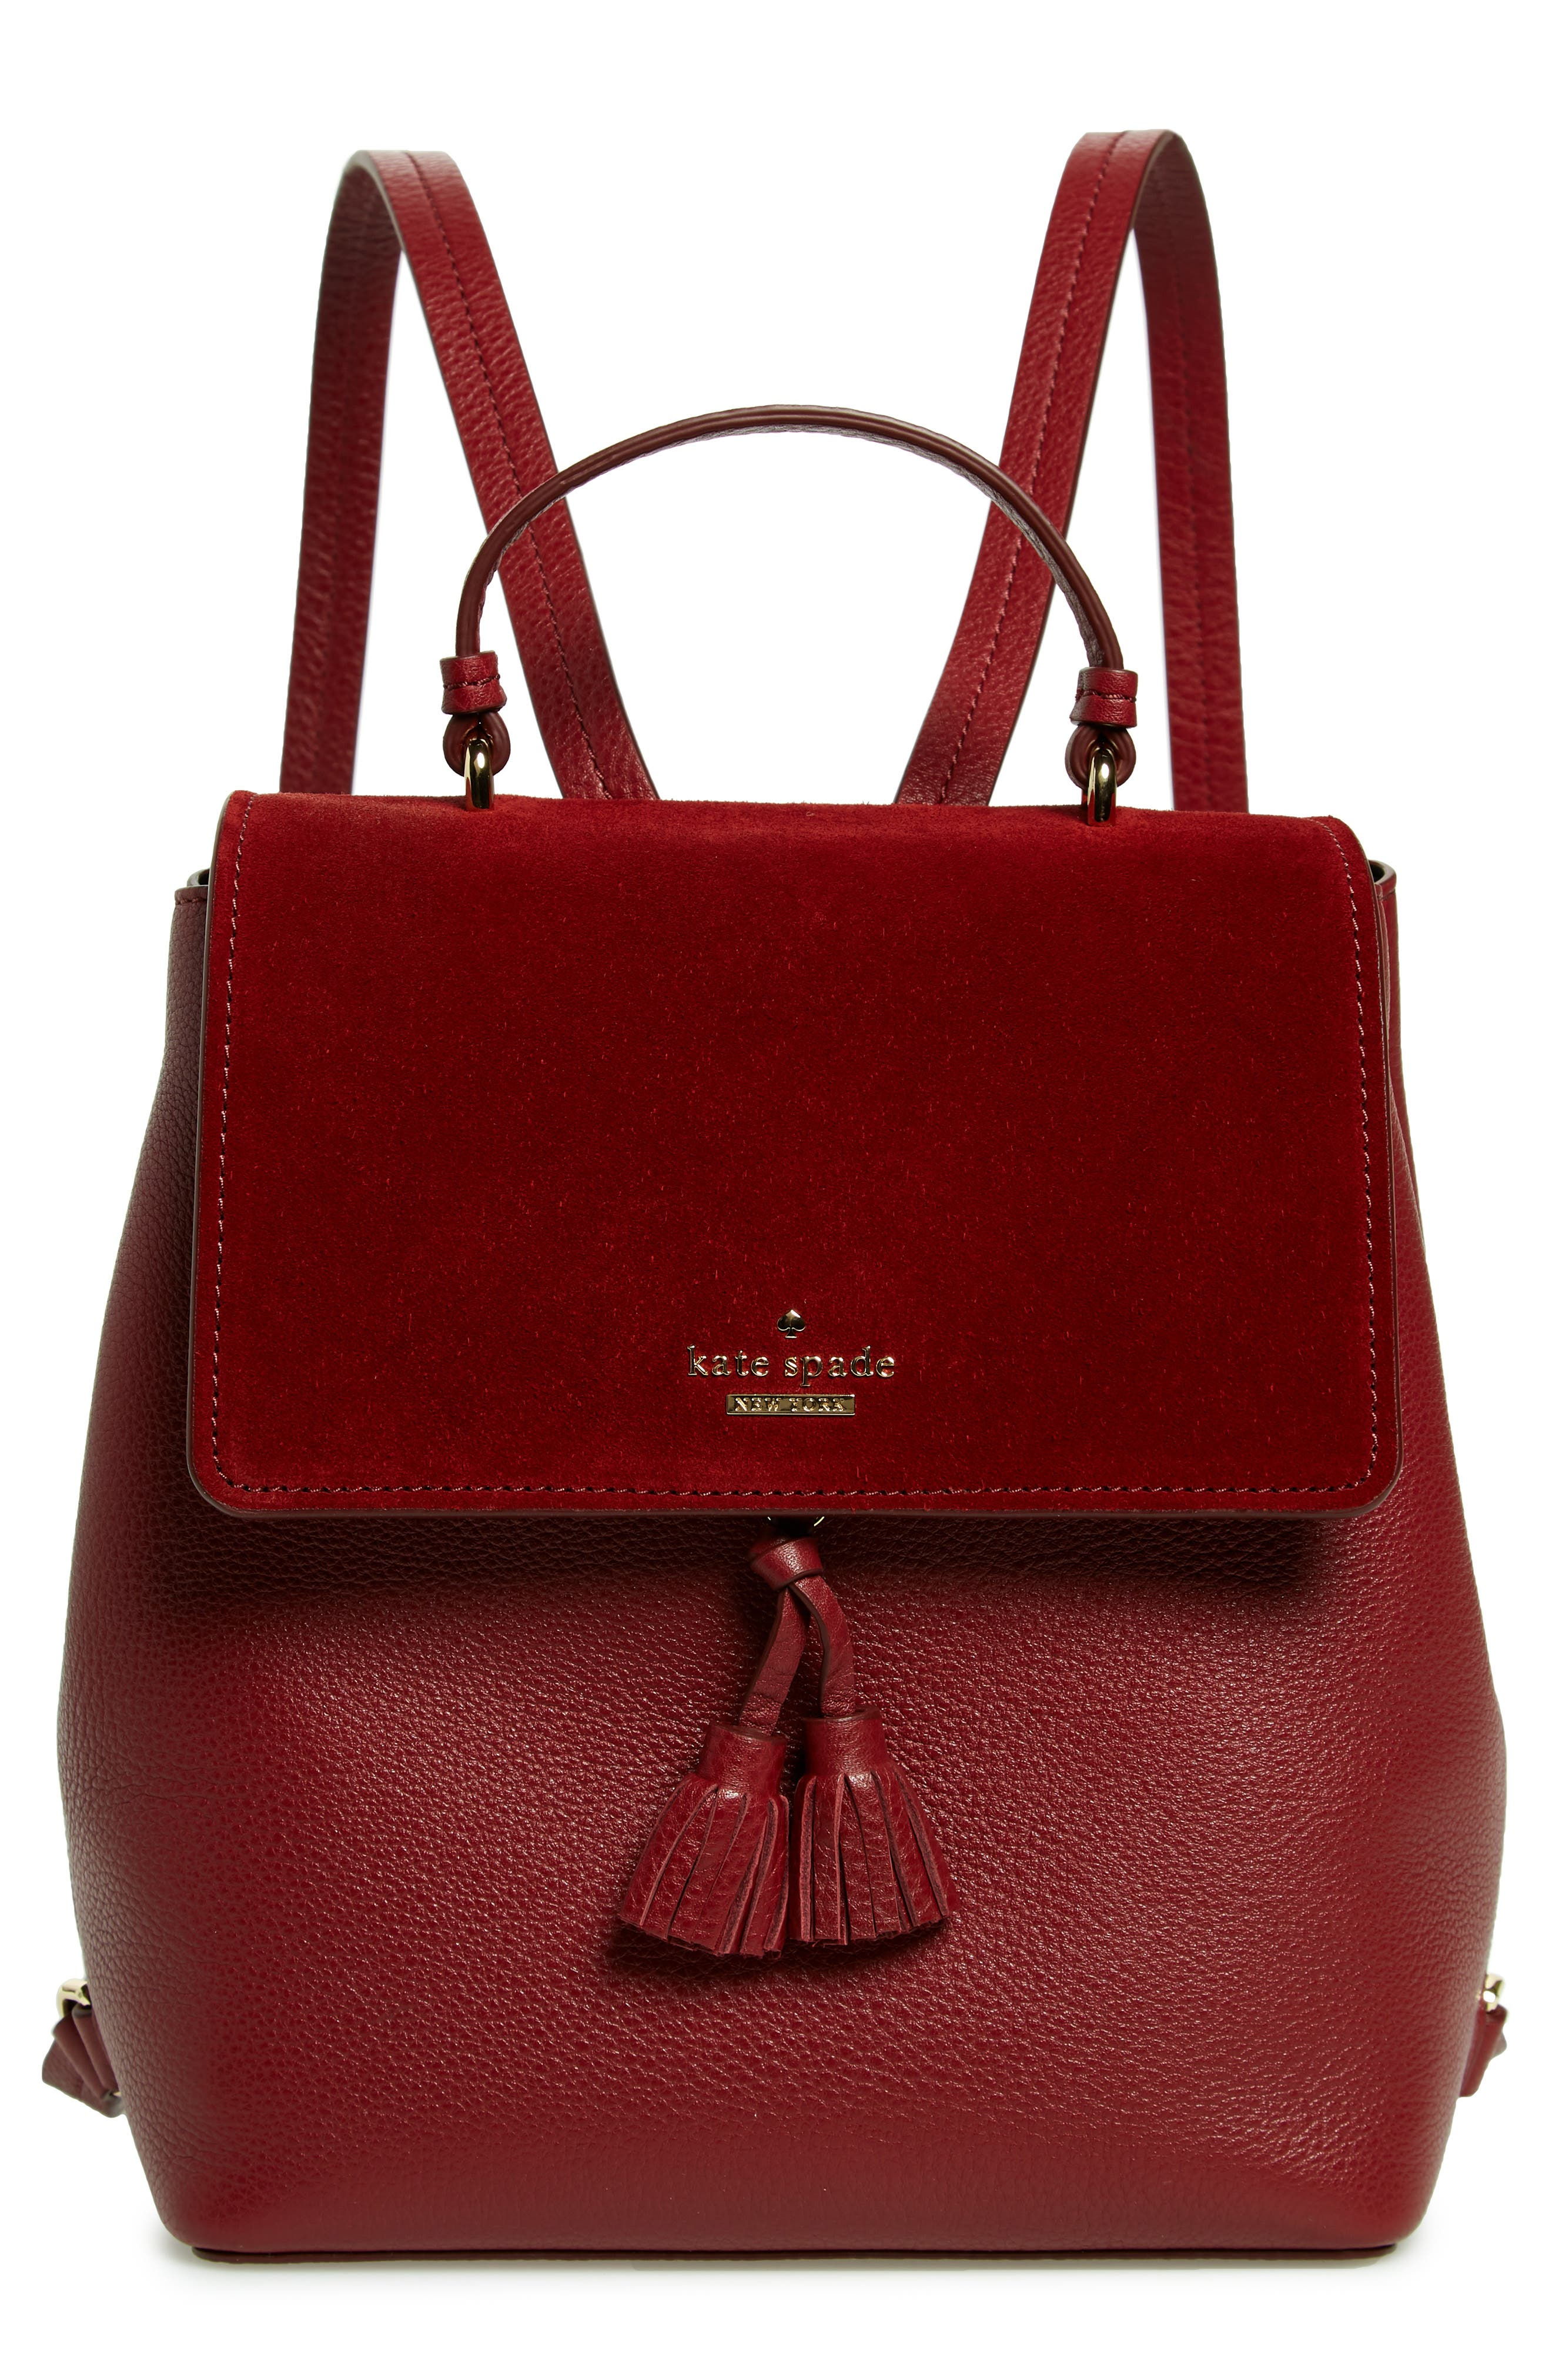 KATE SPADE NEW YORK hayes street - teba leather & suede backpack, Main, color, 600